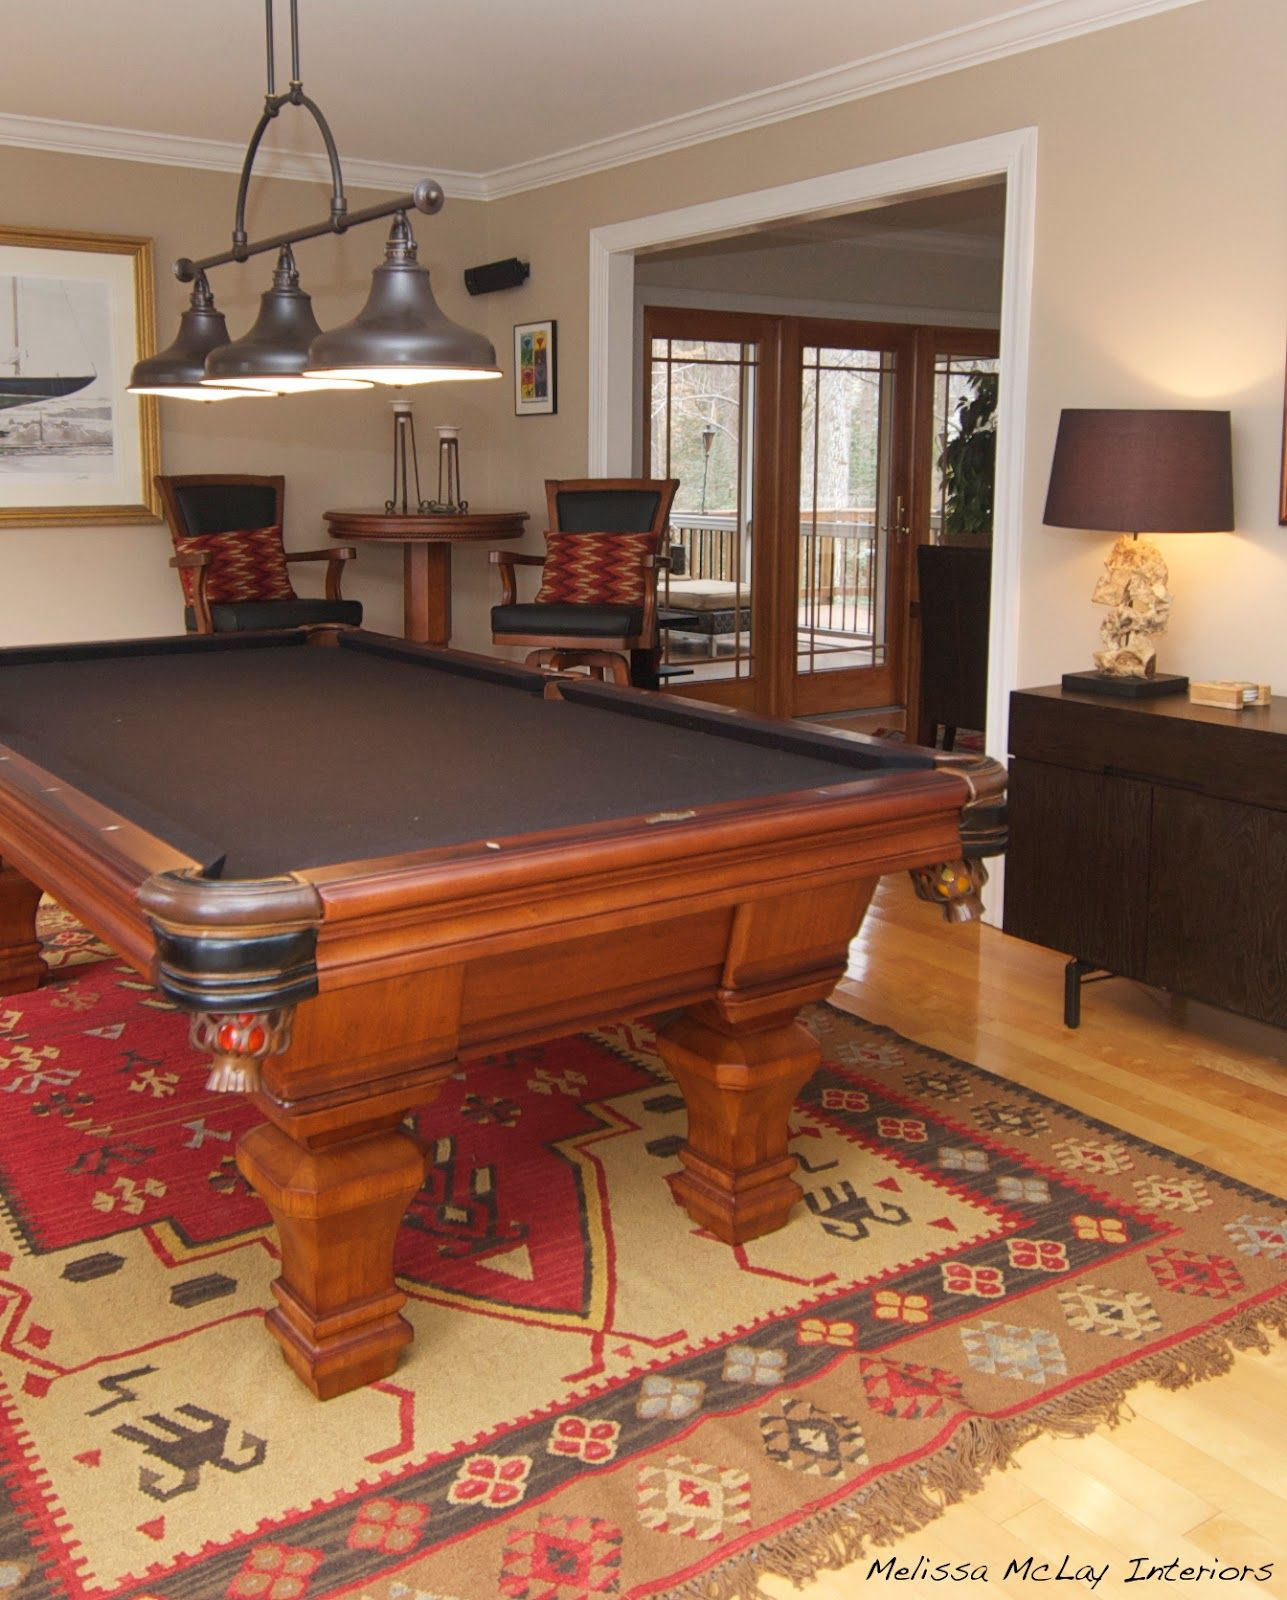 billiard room decor project converting a living room into a billiard room and more. Black Bedroom Furniture Sets. Home Design Ideas